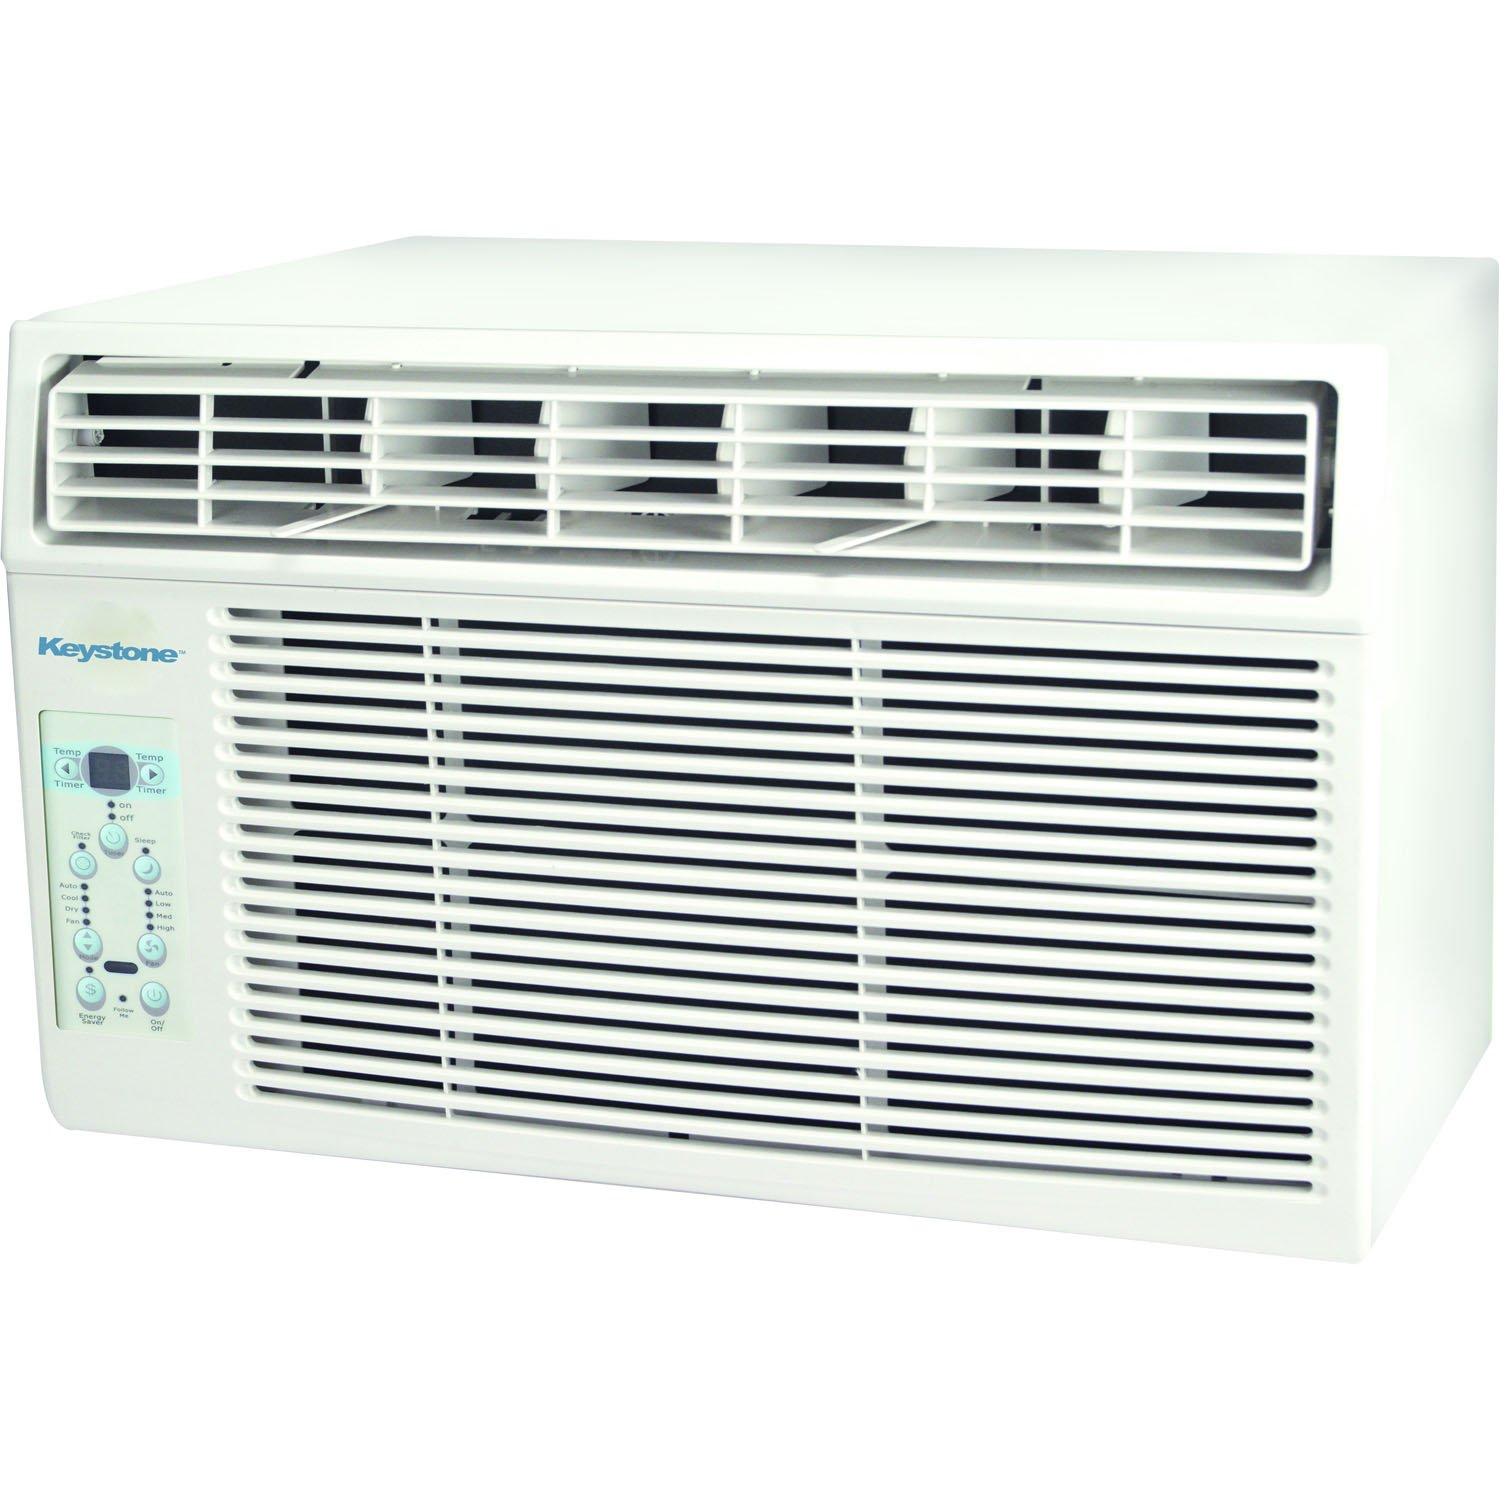 Keystone KSTAW06C 6000 BTU 115V Window-Mounted Air Conditioner with Follow Me LCD Remote Control